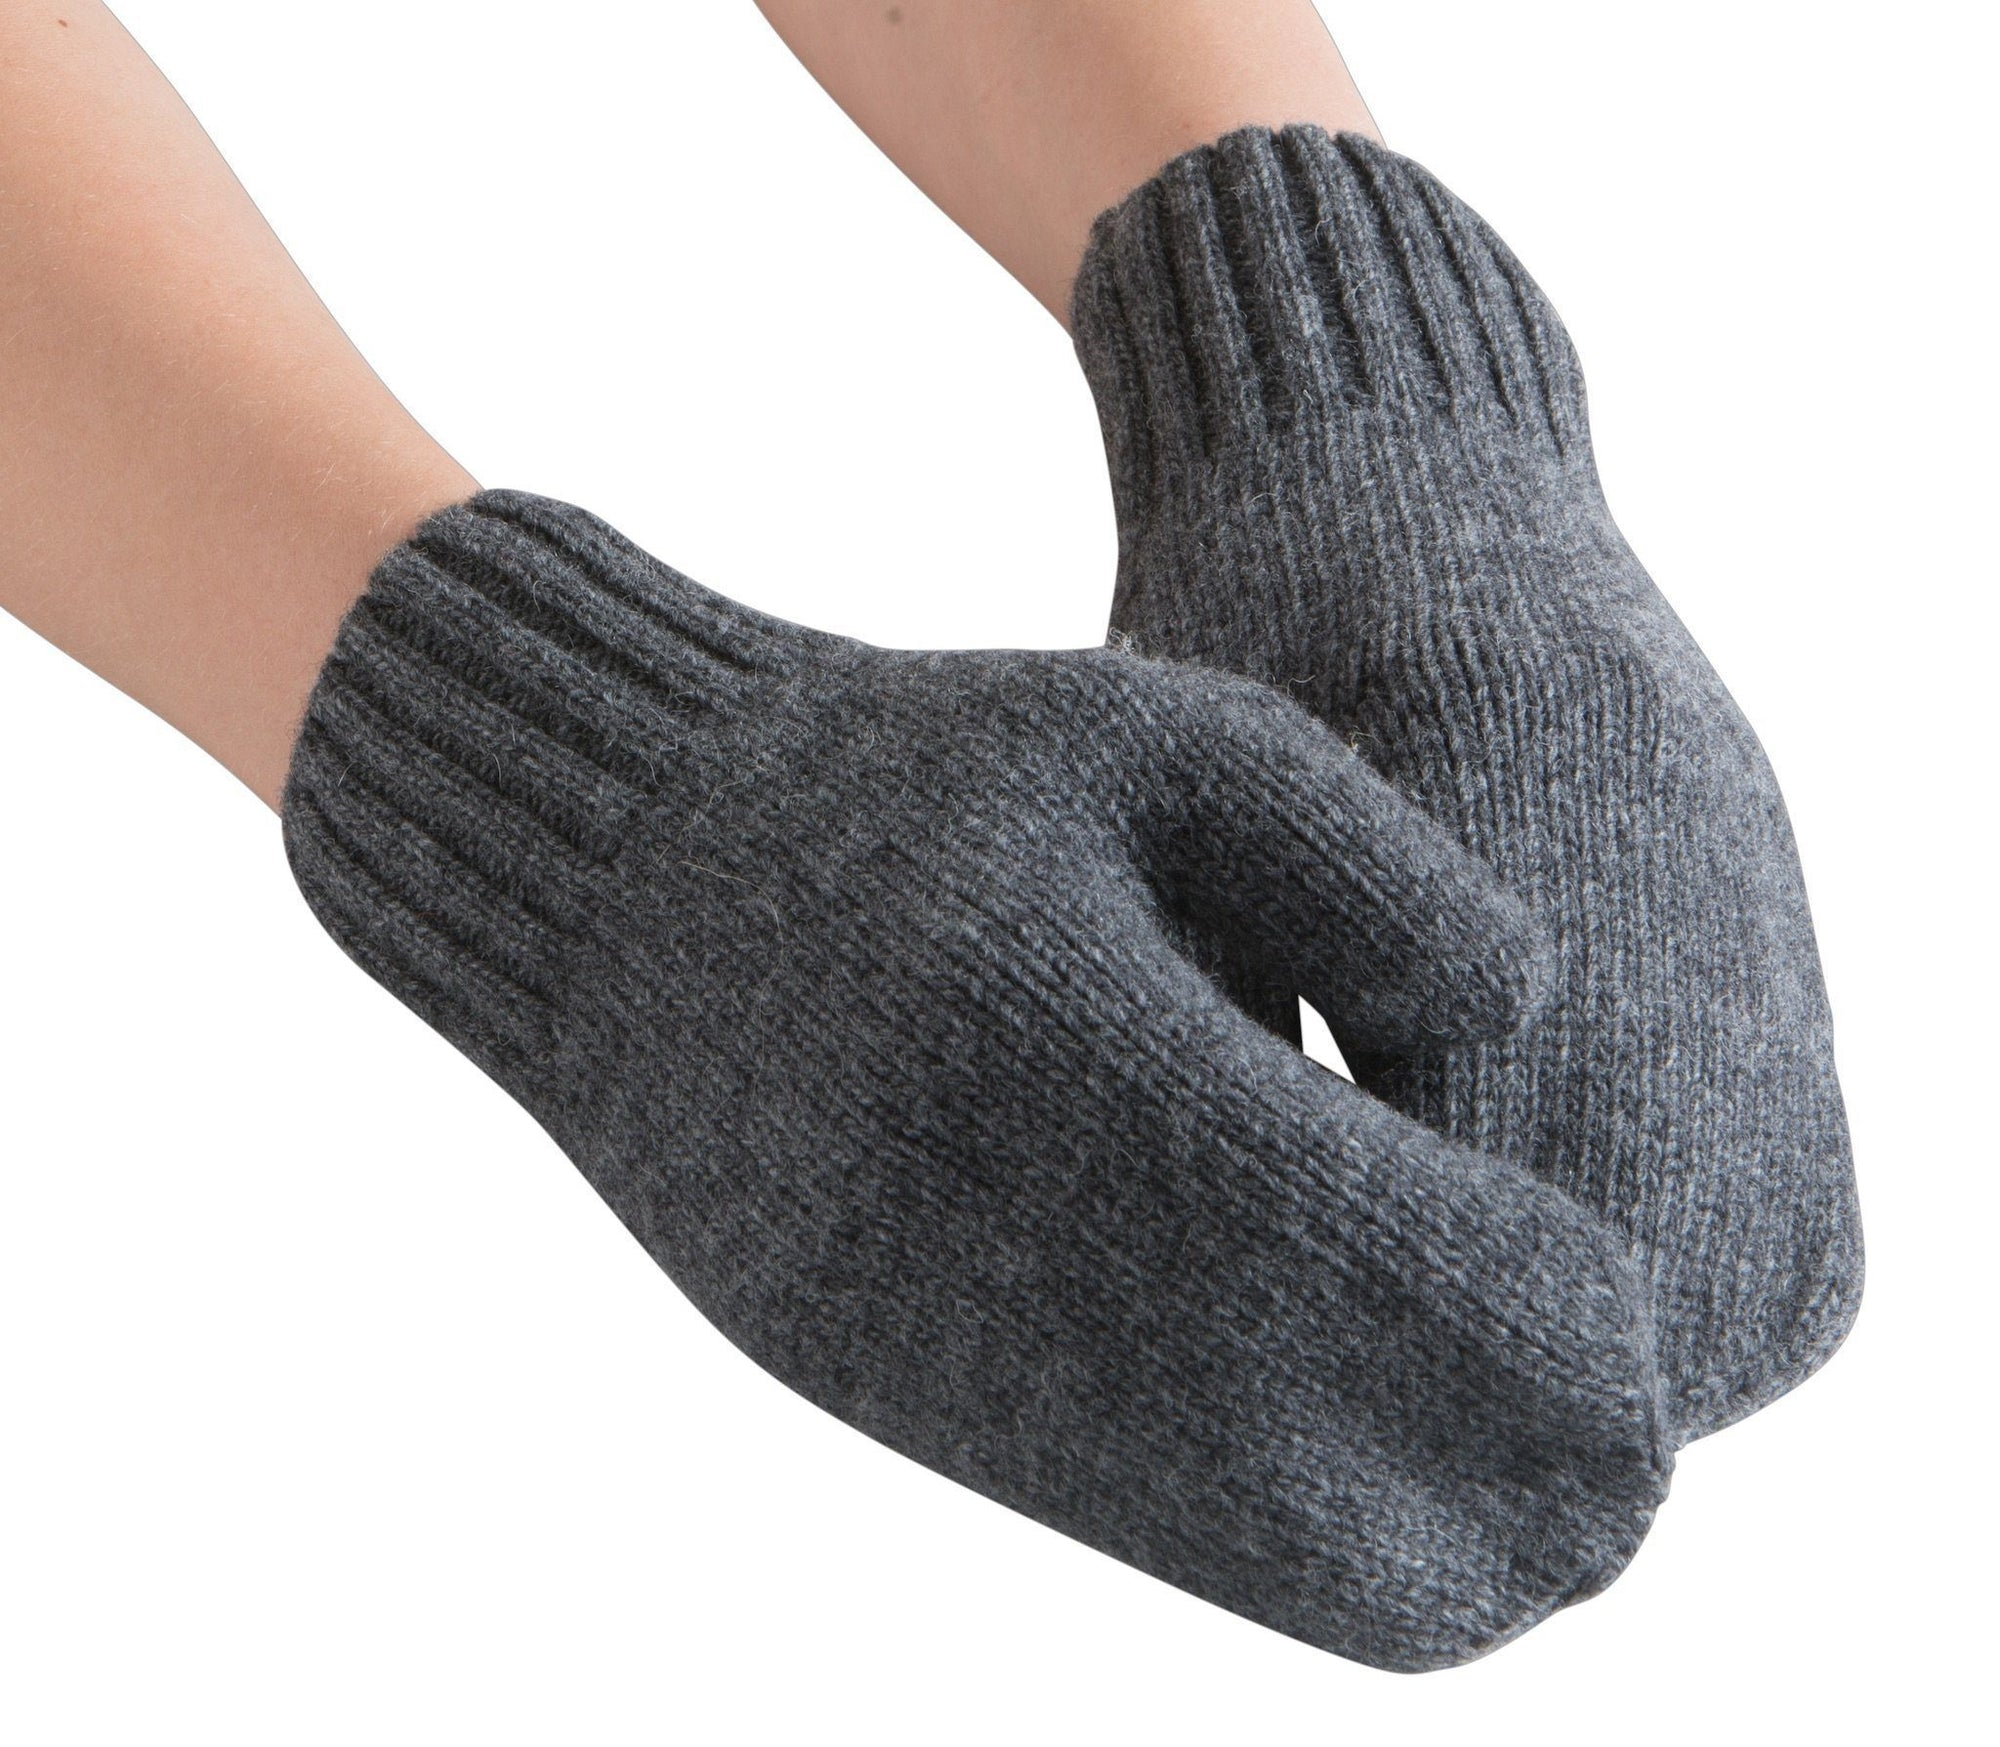 North Outdoor - Kivi Mittens - 100% Merino Wool - Made in Finland - Weekendbee - sustainable sportswear